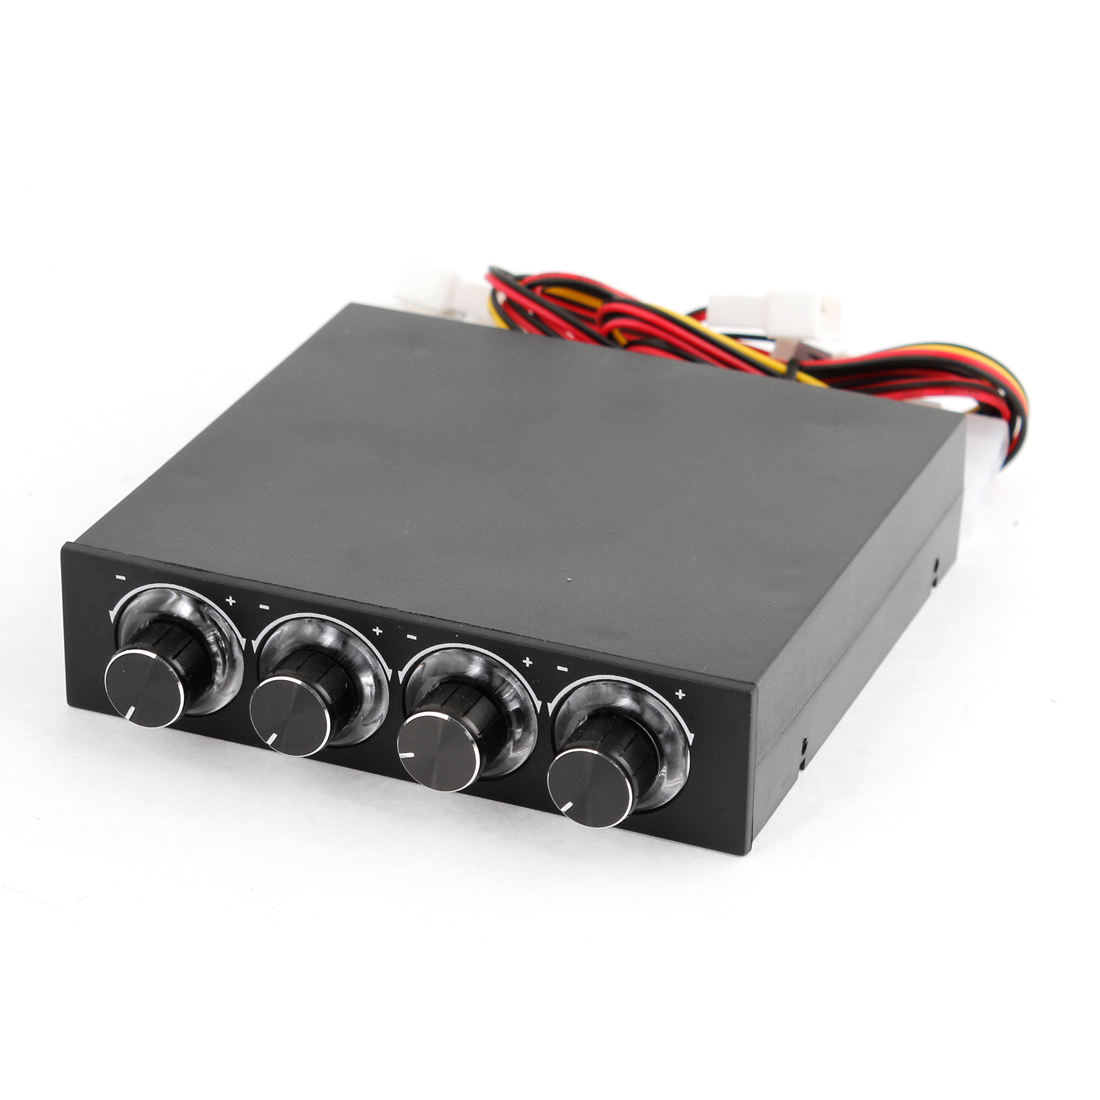 "Desktop Front Panel 3.5"" Temperature 4 Fans Controller"